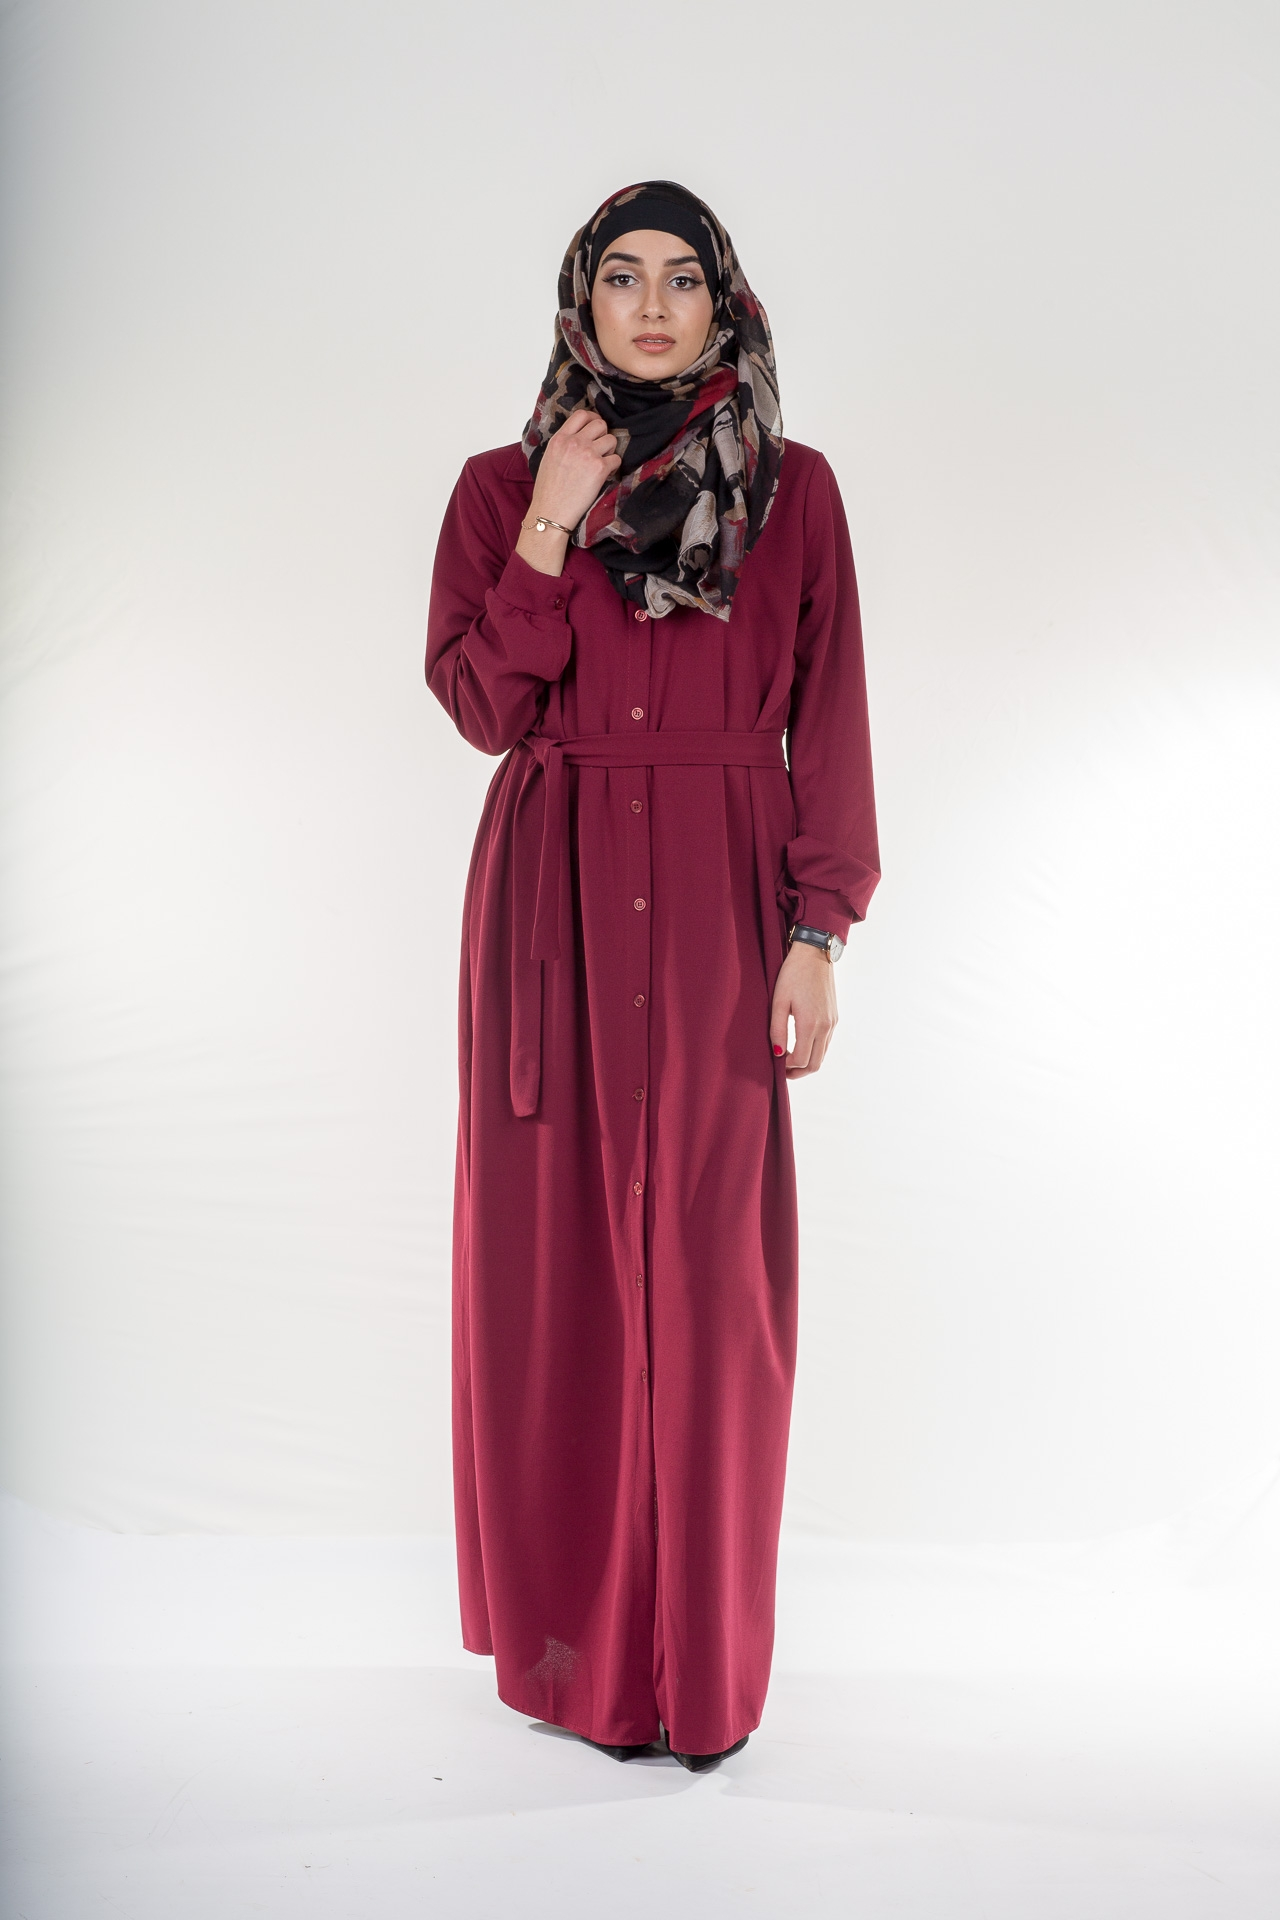 Robe Winter bordeaux (prune)